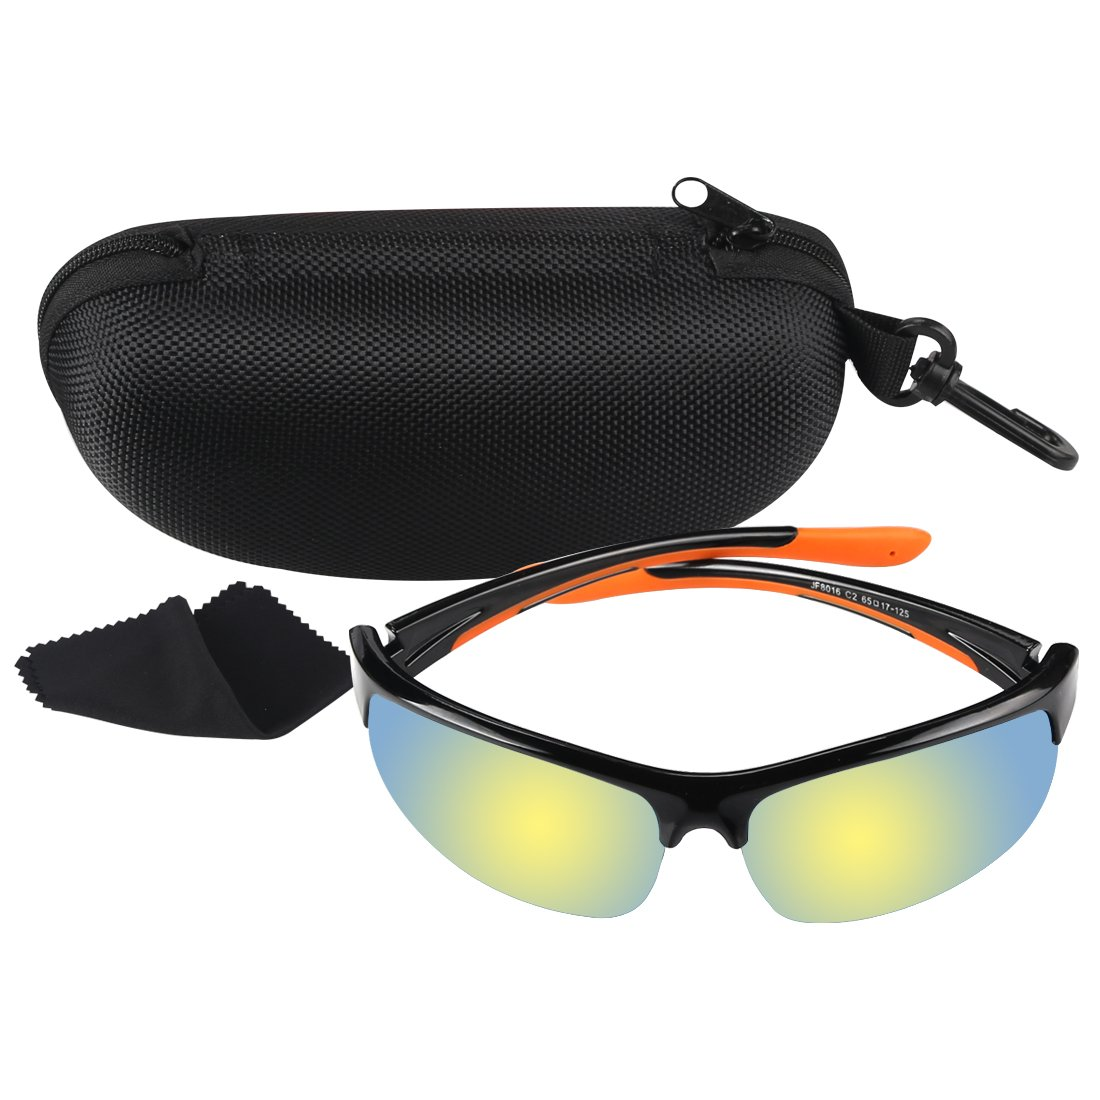 YUNNOO Horticulture UV400 LED Indoor Growing Hydroponics Grow Light Room Glasses for Intense LED Lighting Visual Eye Protection LED Grower